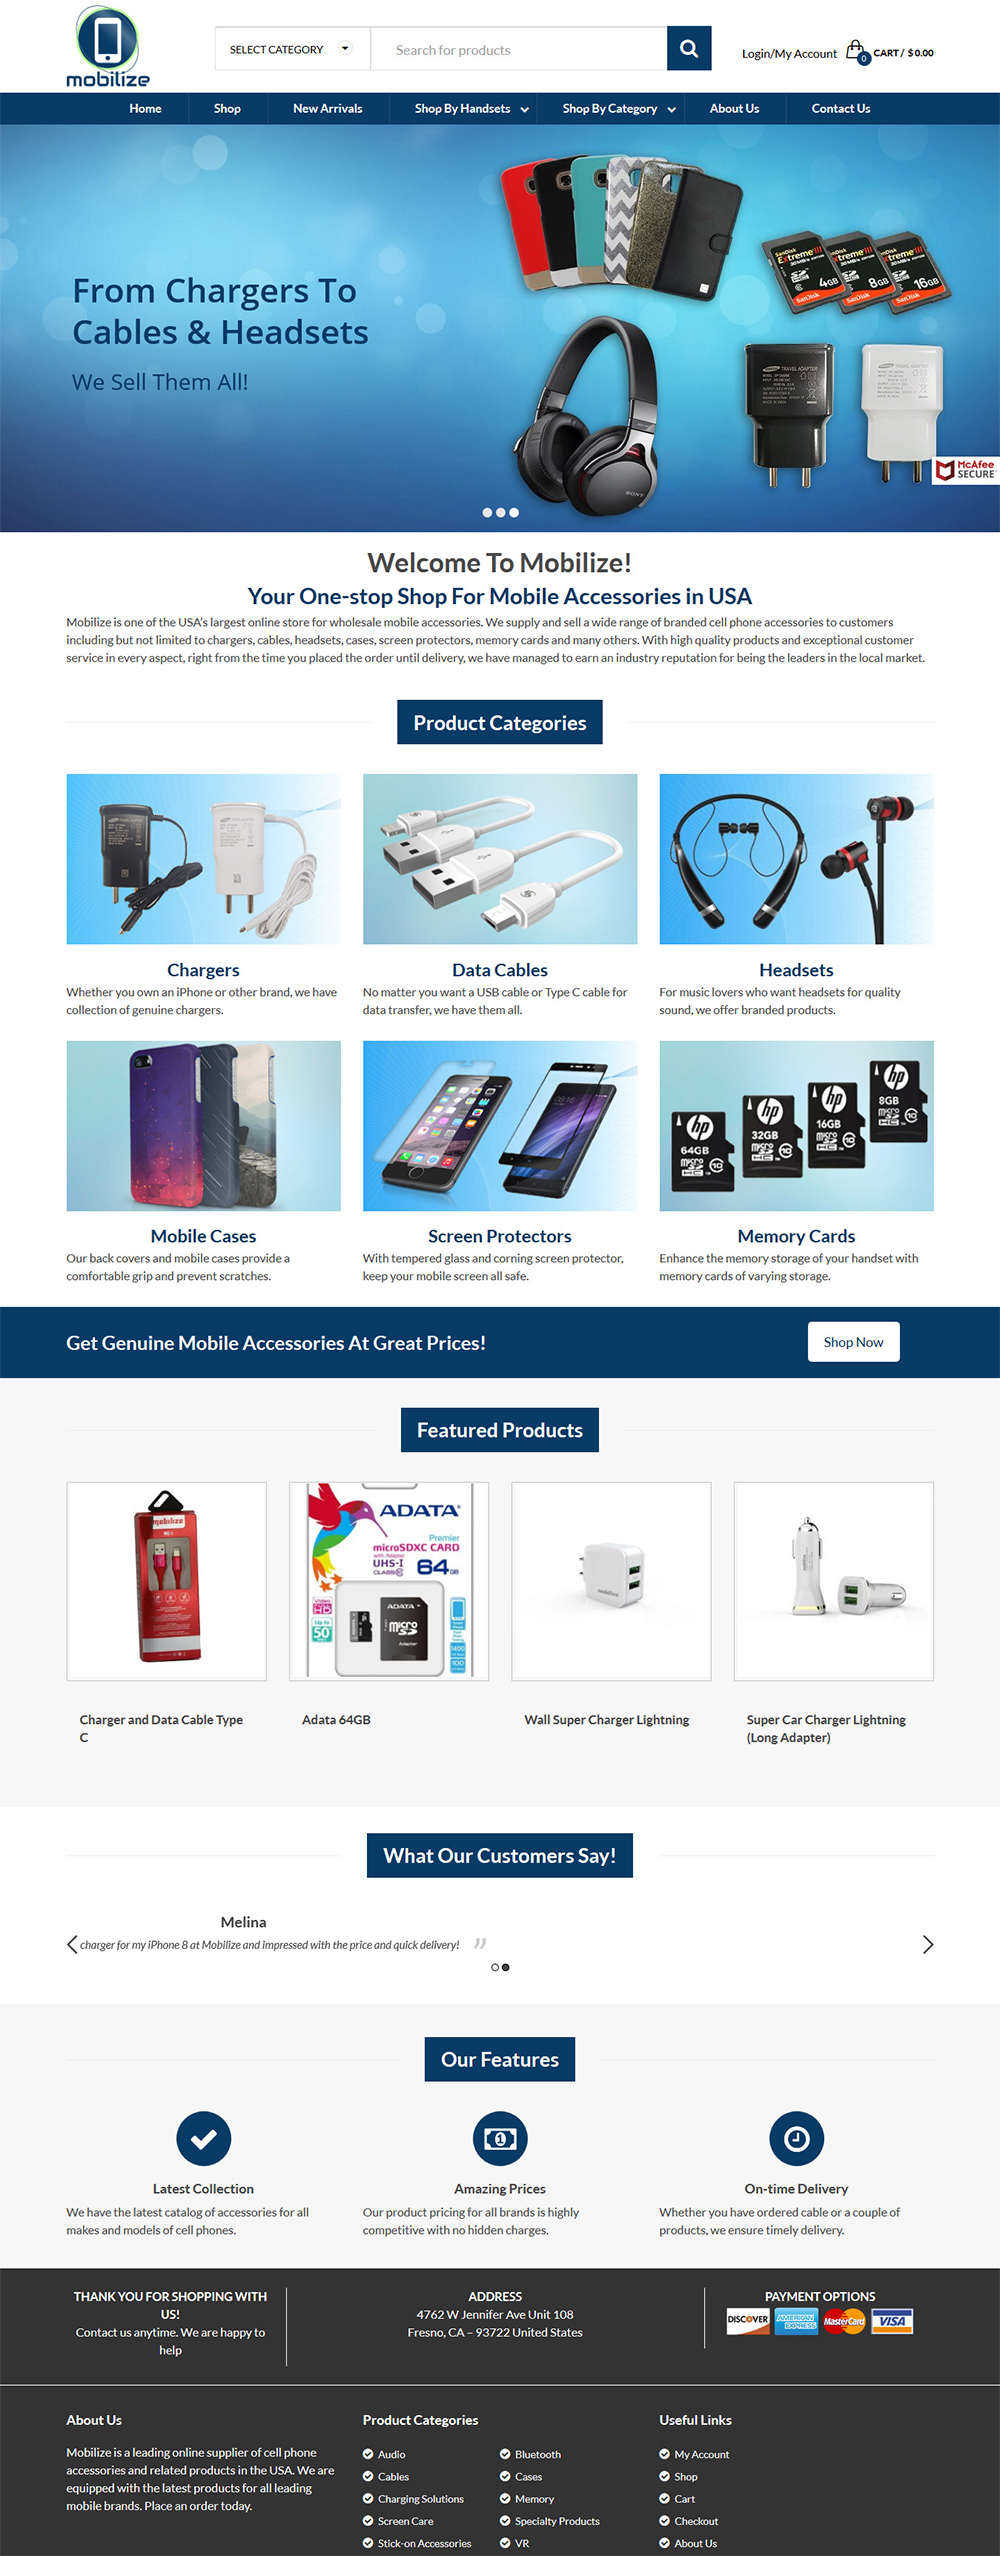 eCommerce Website Design San Jose